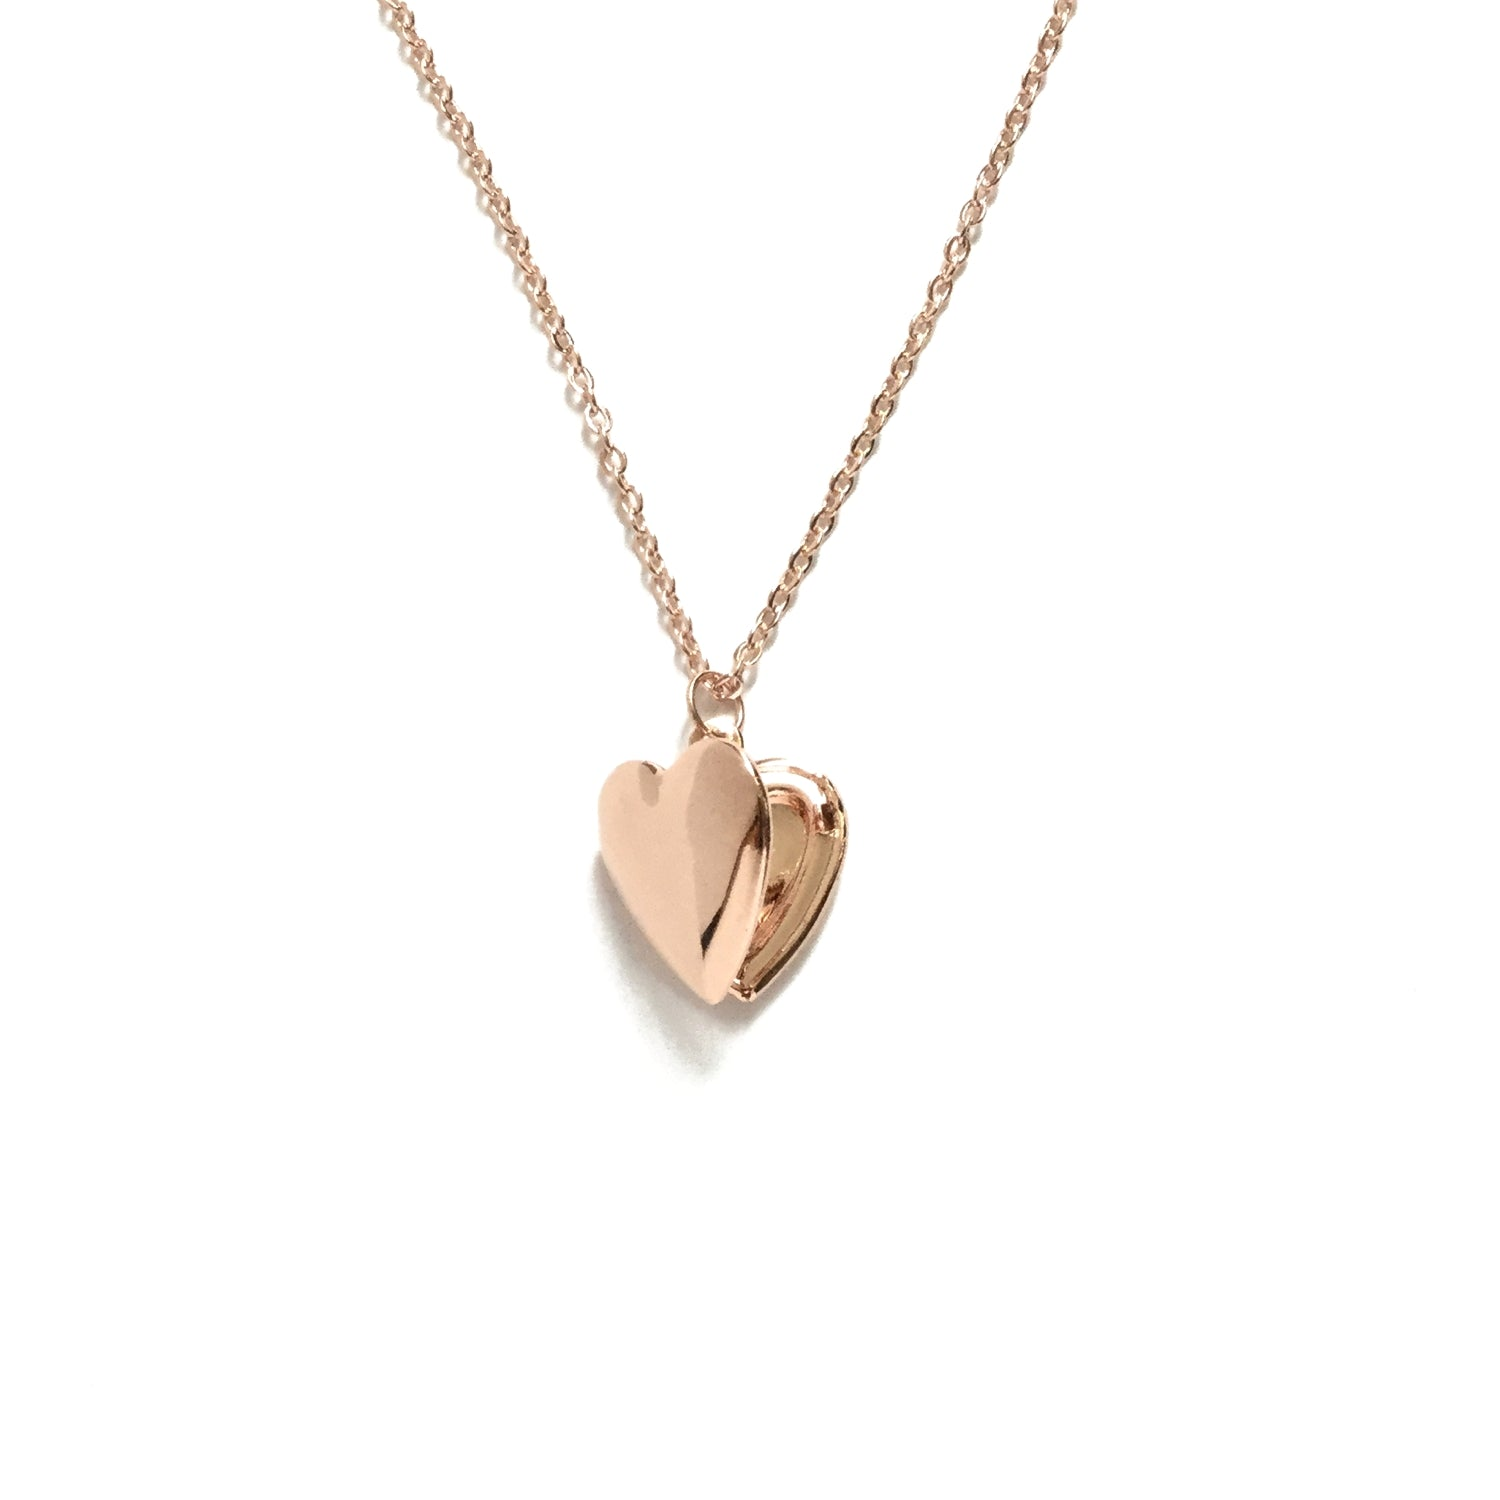 Tiny rose gold shiny heart shaped locket